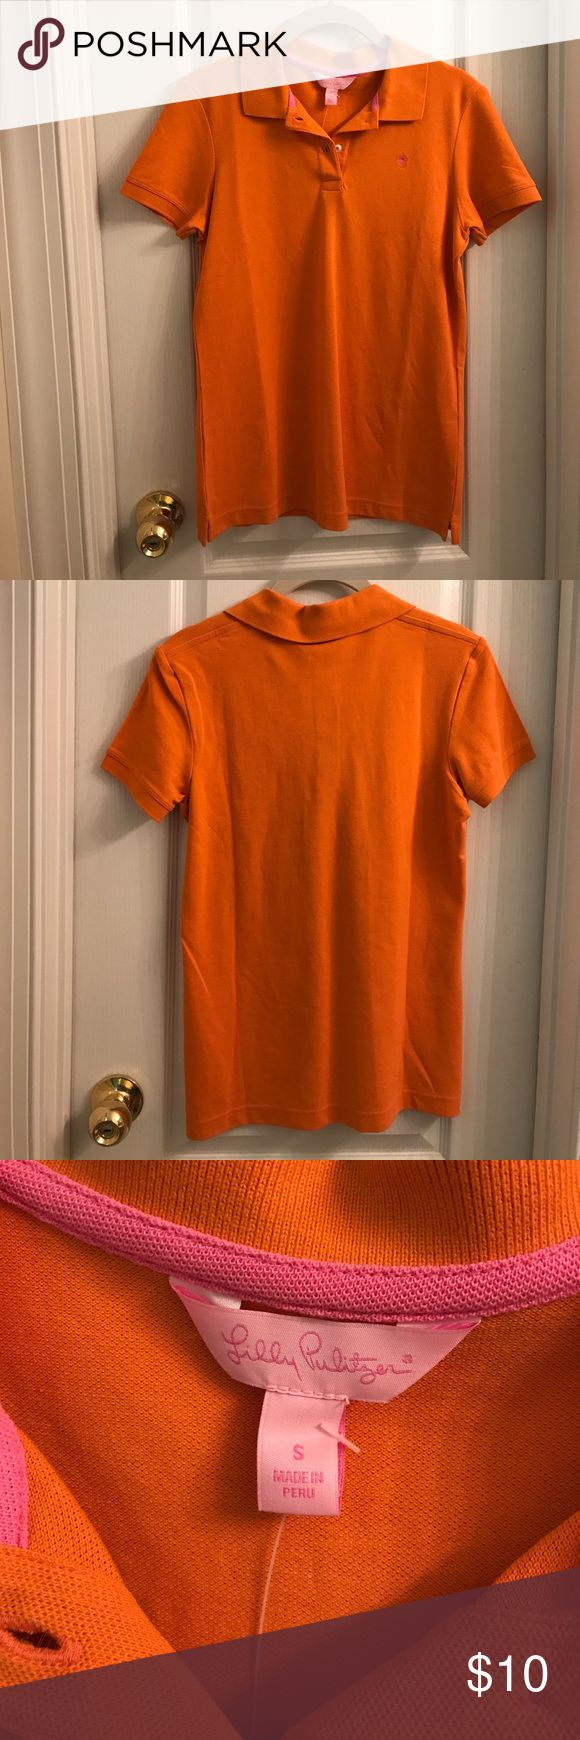 Lilly Pulitzer Shrunken Pique Polo NEW WITH TAGS - Lilly Pulitzer women's polo top. Salamander orange. From non-smoking, non-pet home. Please let me know if you have questions. Lilly Pulitzer Tops Tees - Short Sleeve